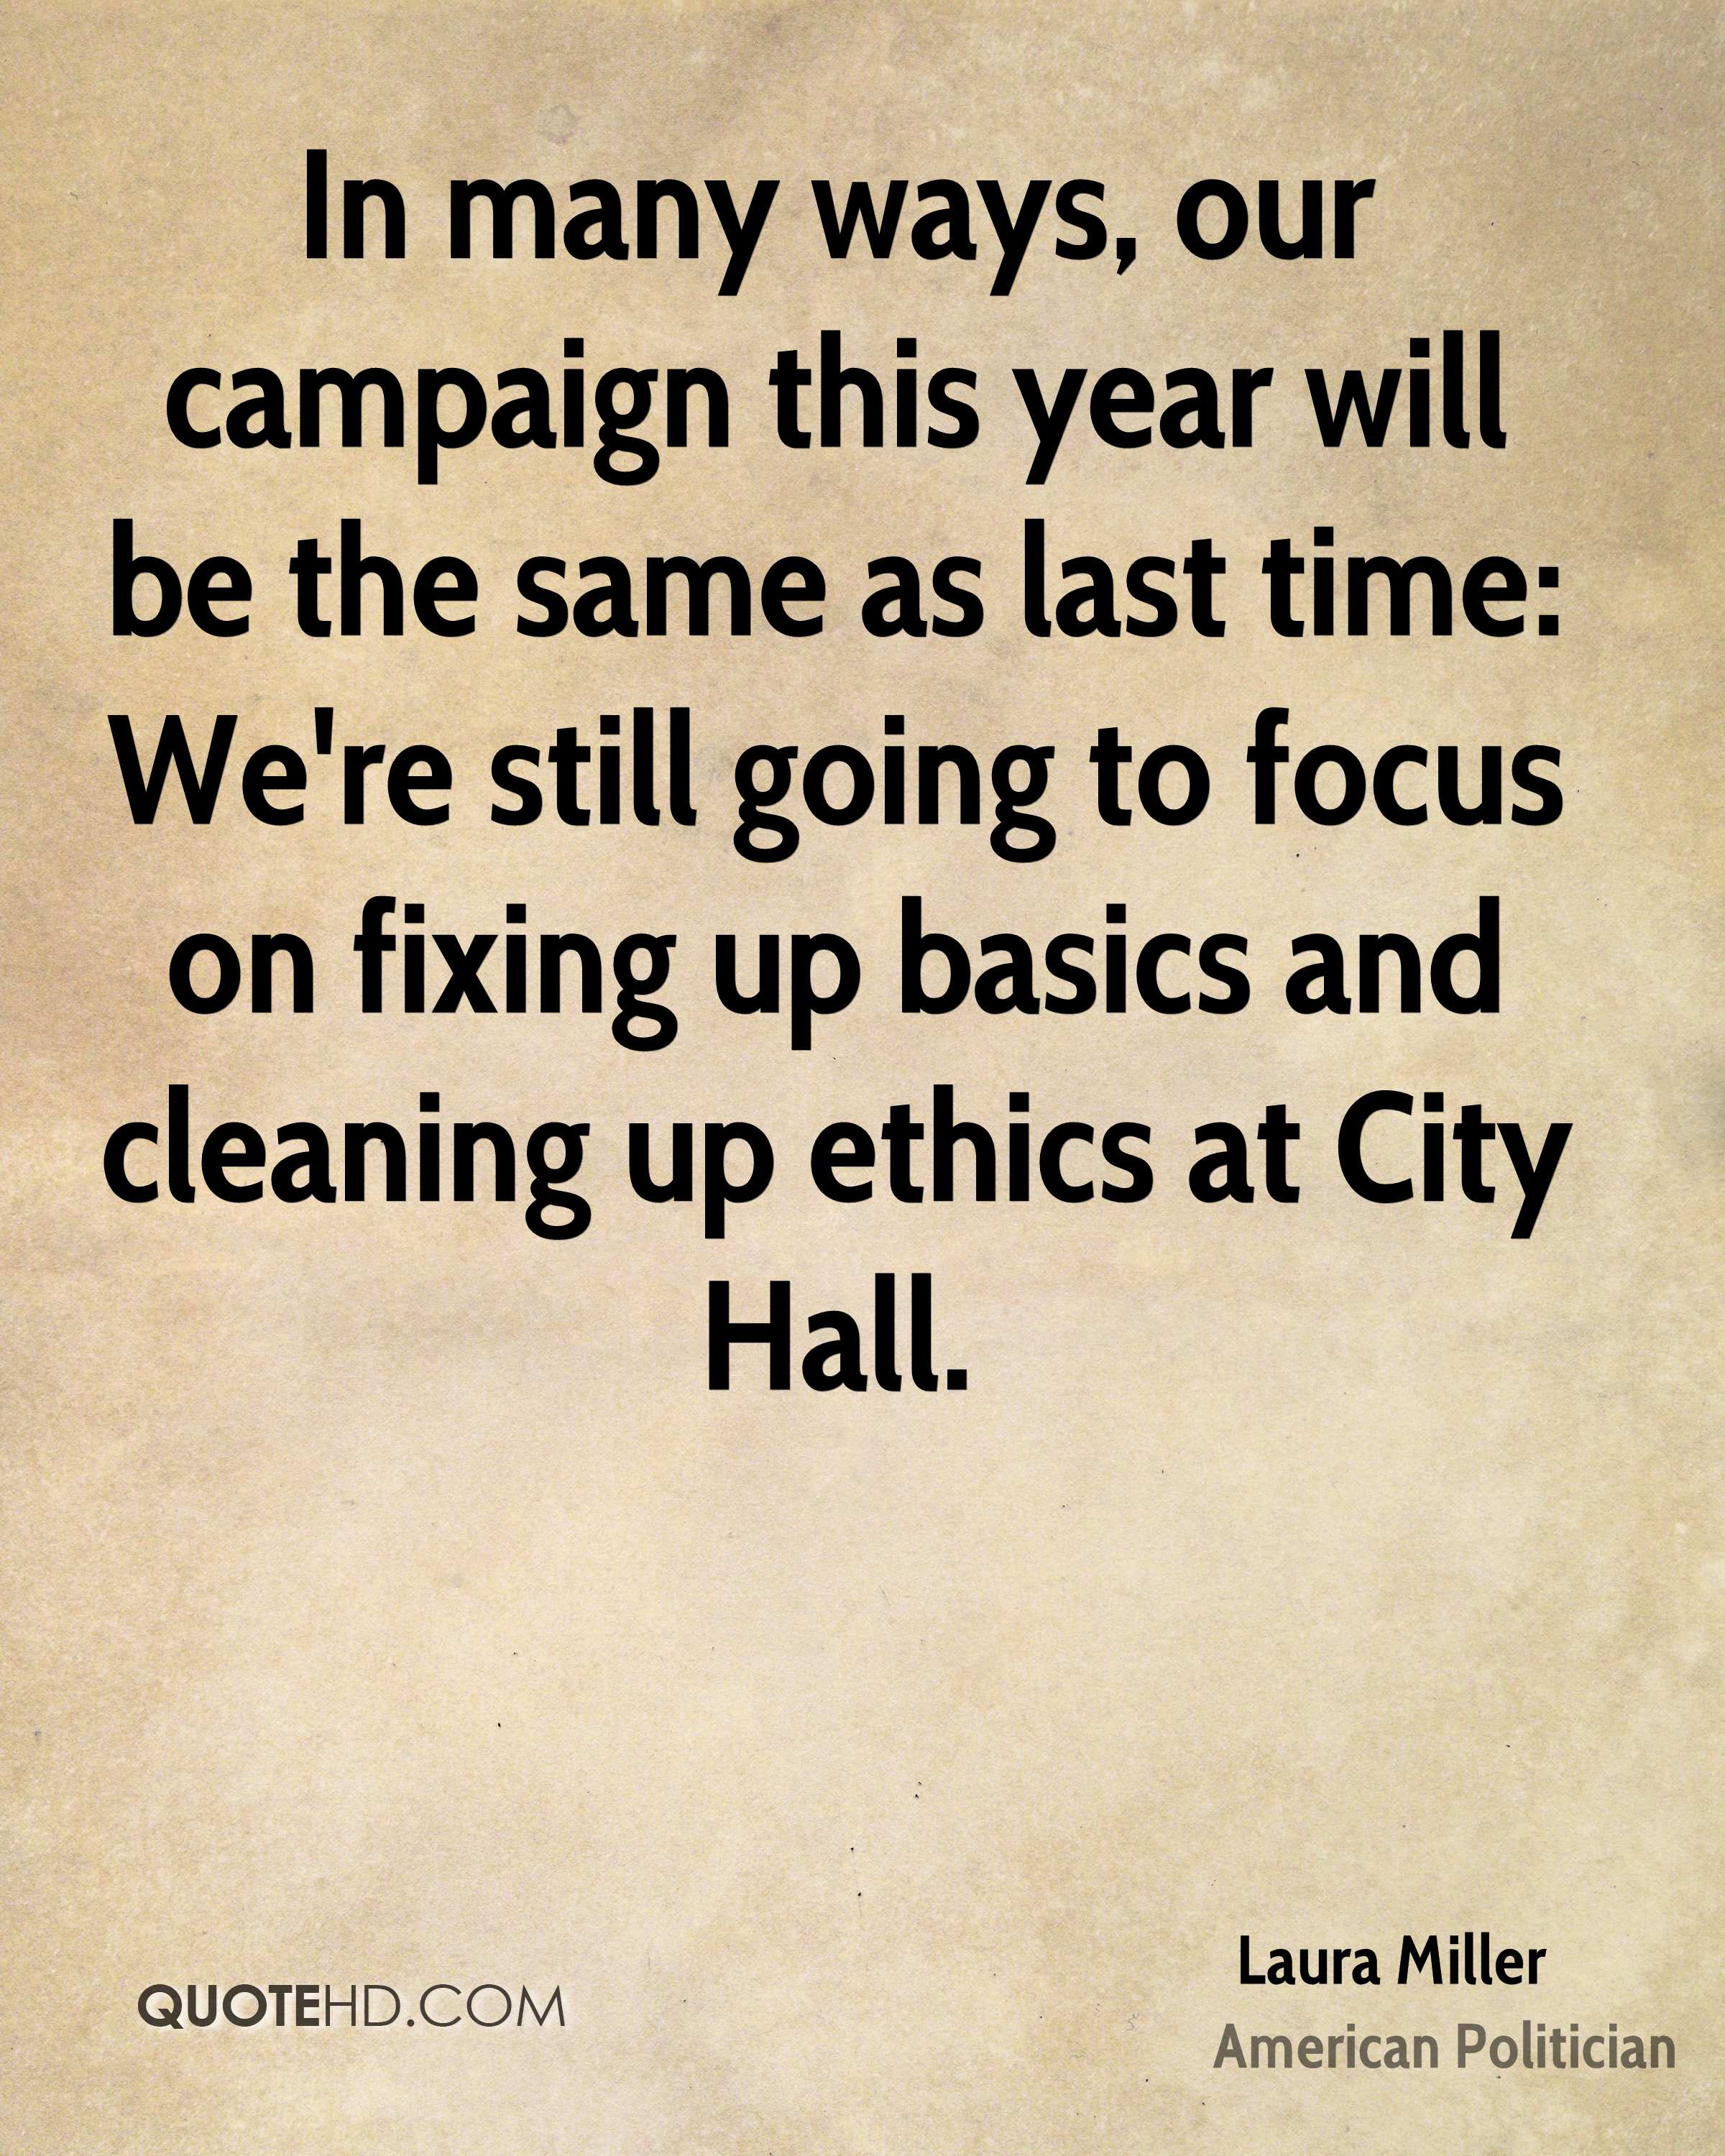 In many ways, our campaign this year will be the same as last time: We're still going to focus on fixing up basics and cleaning up ethics at City Hall.